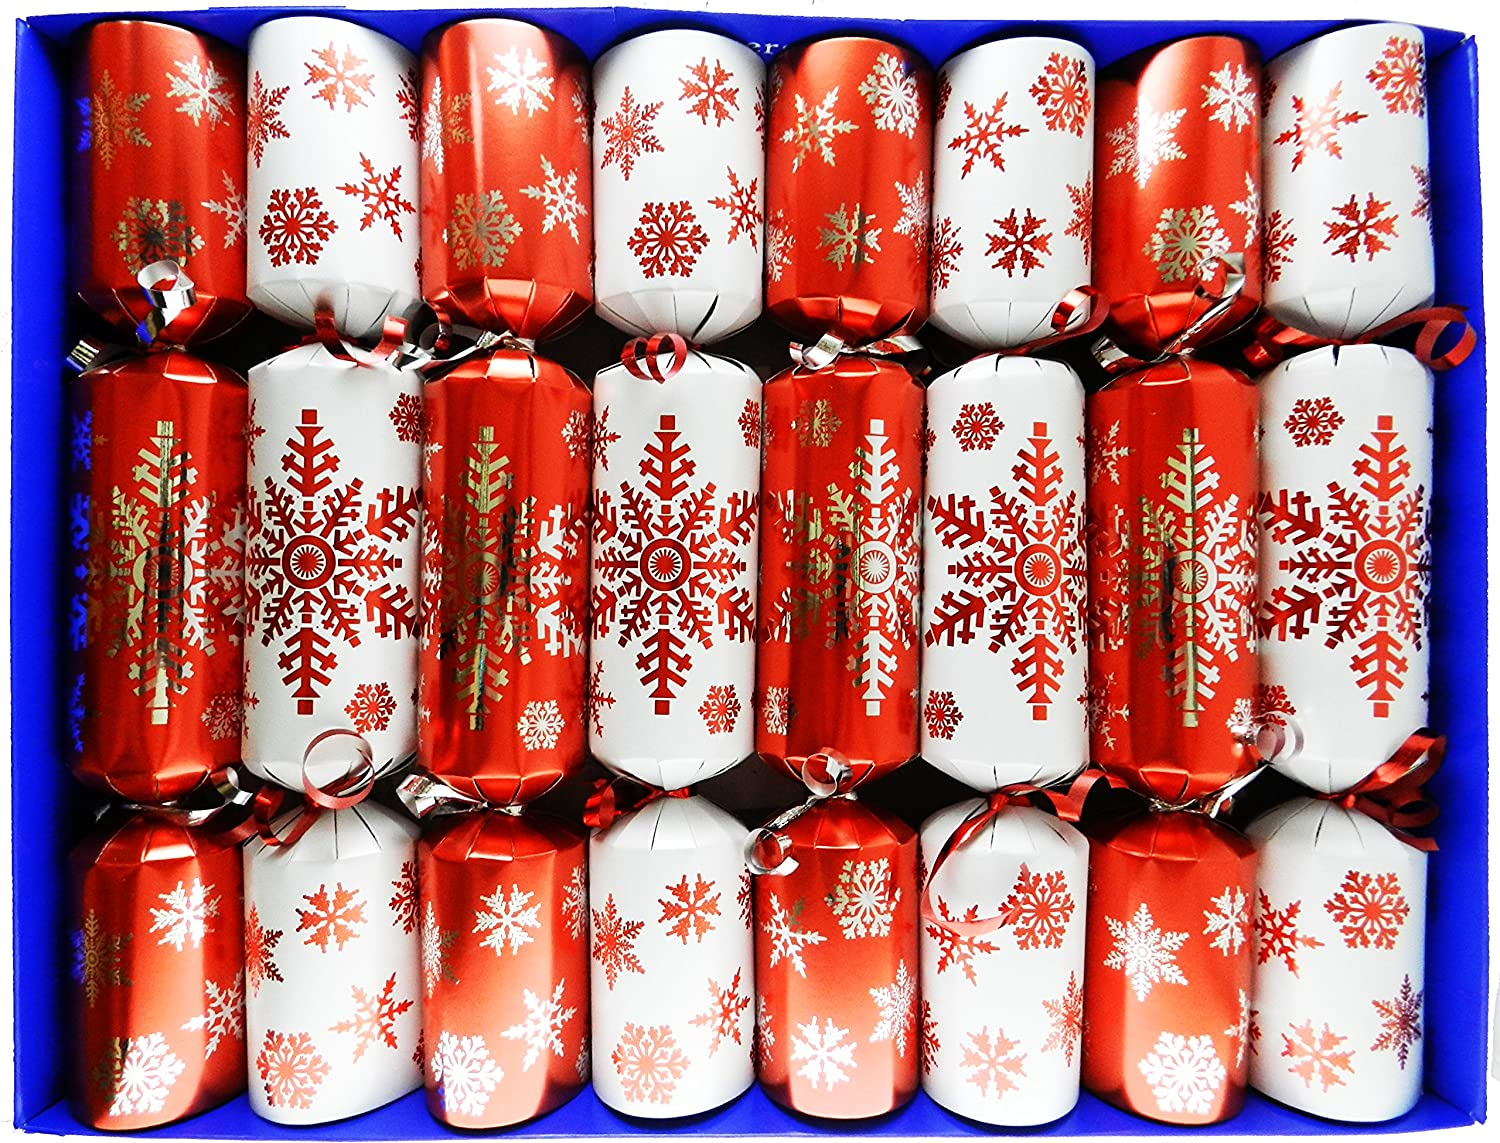 Fill Your Own Christmas Crackers - Box of 8 Crackers in a Red and White Snowflake Design by Crackers Ltd (Cat F1)